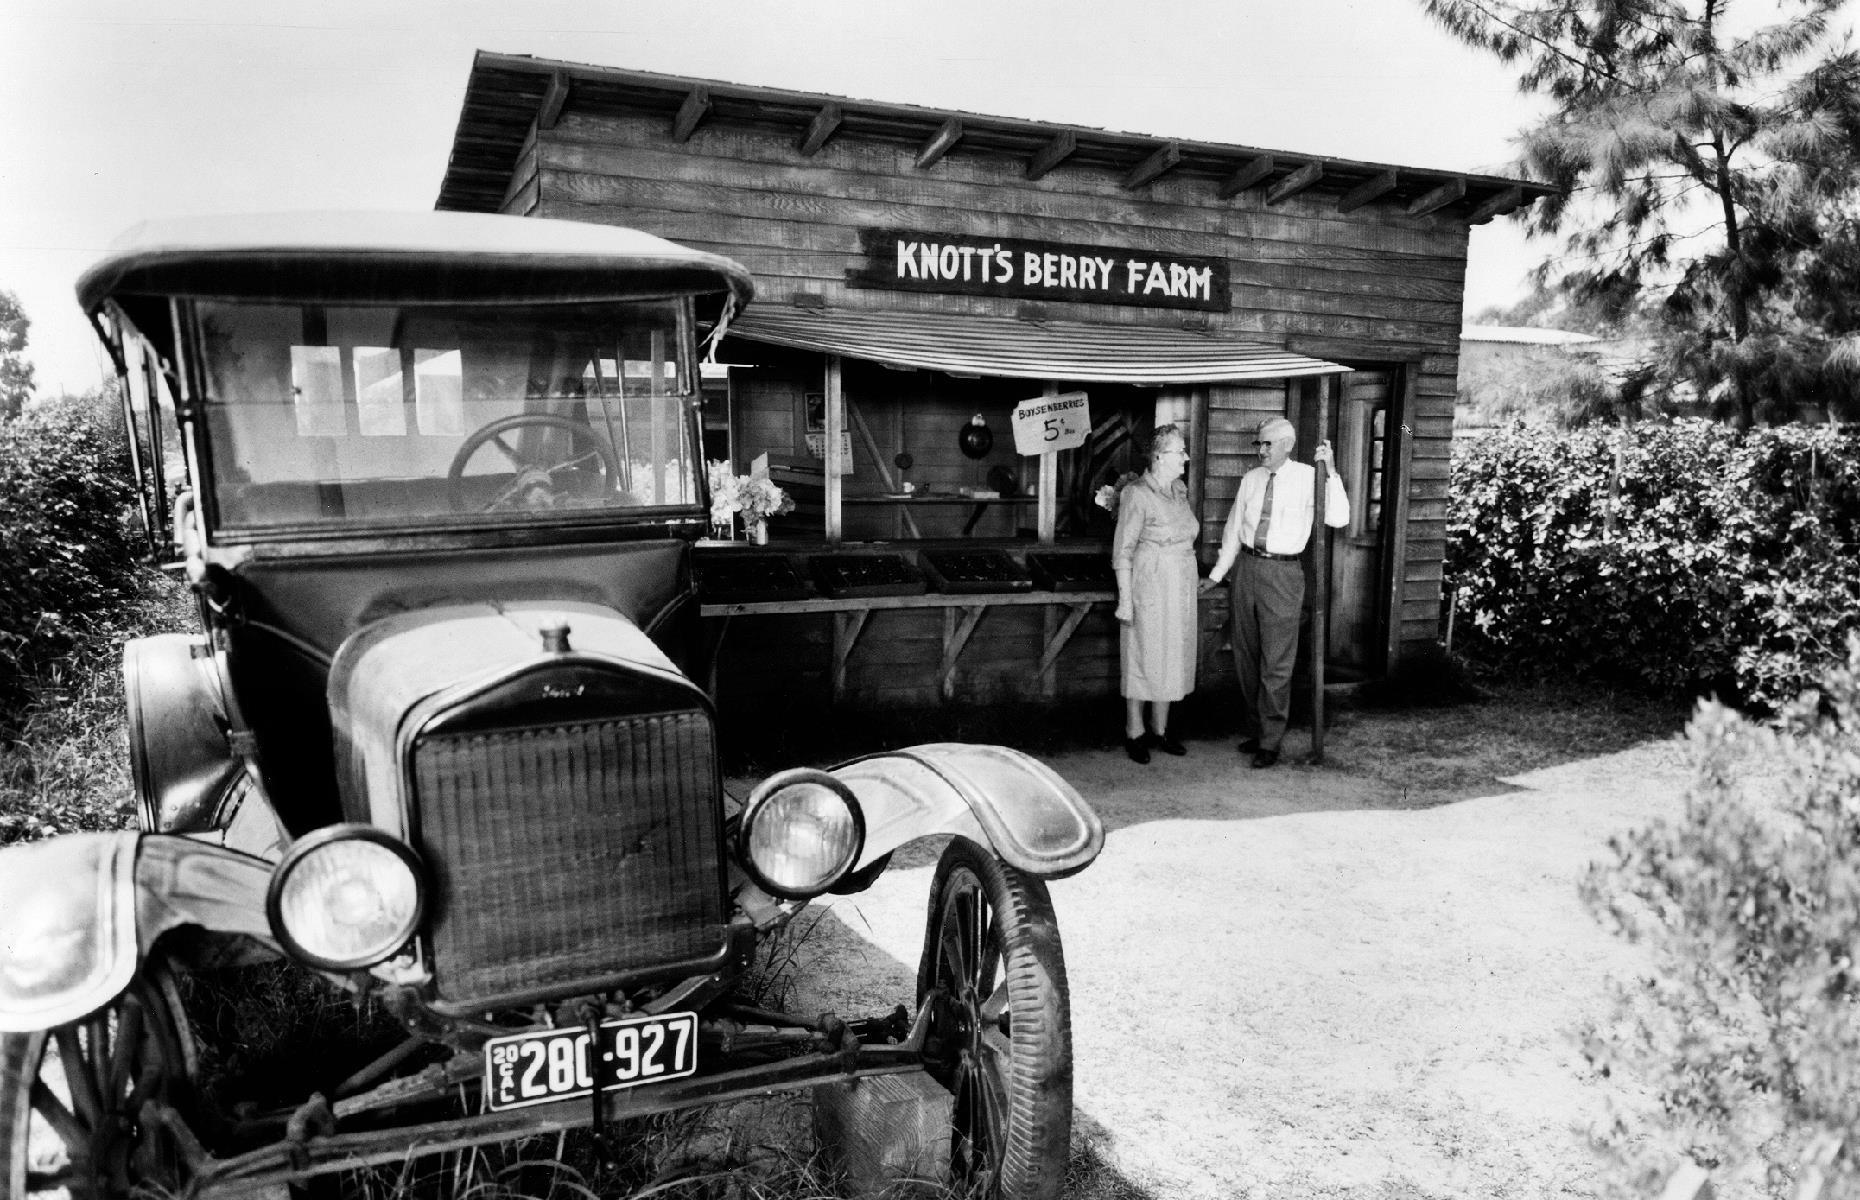 Slide 31 of 47: Knott's Berry Farm, a wholesome, family-friendly theme park just over 20 miles (32km) from LA, began life as a berry farm. Walter and Cordelia Knott (pictured), who purchased the land in the 1920s, made their living from growing boysenberries and selling them at a humble roadside stand. Before long, their simple berry business was drawing in the crowds.